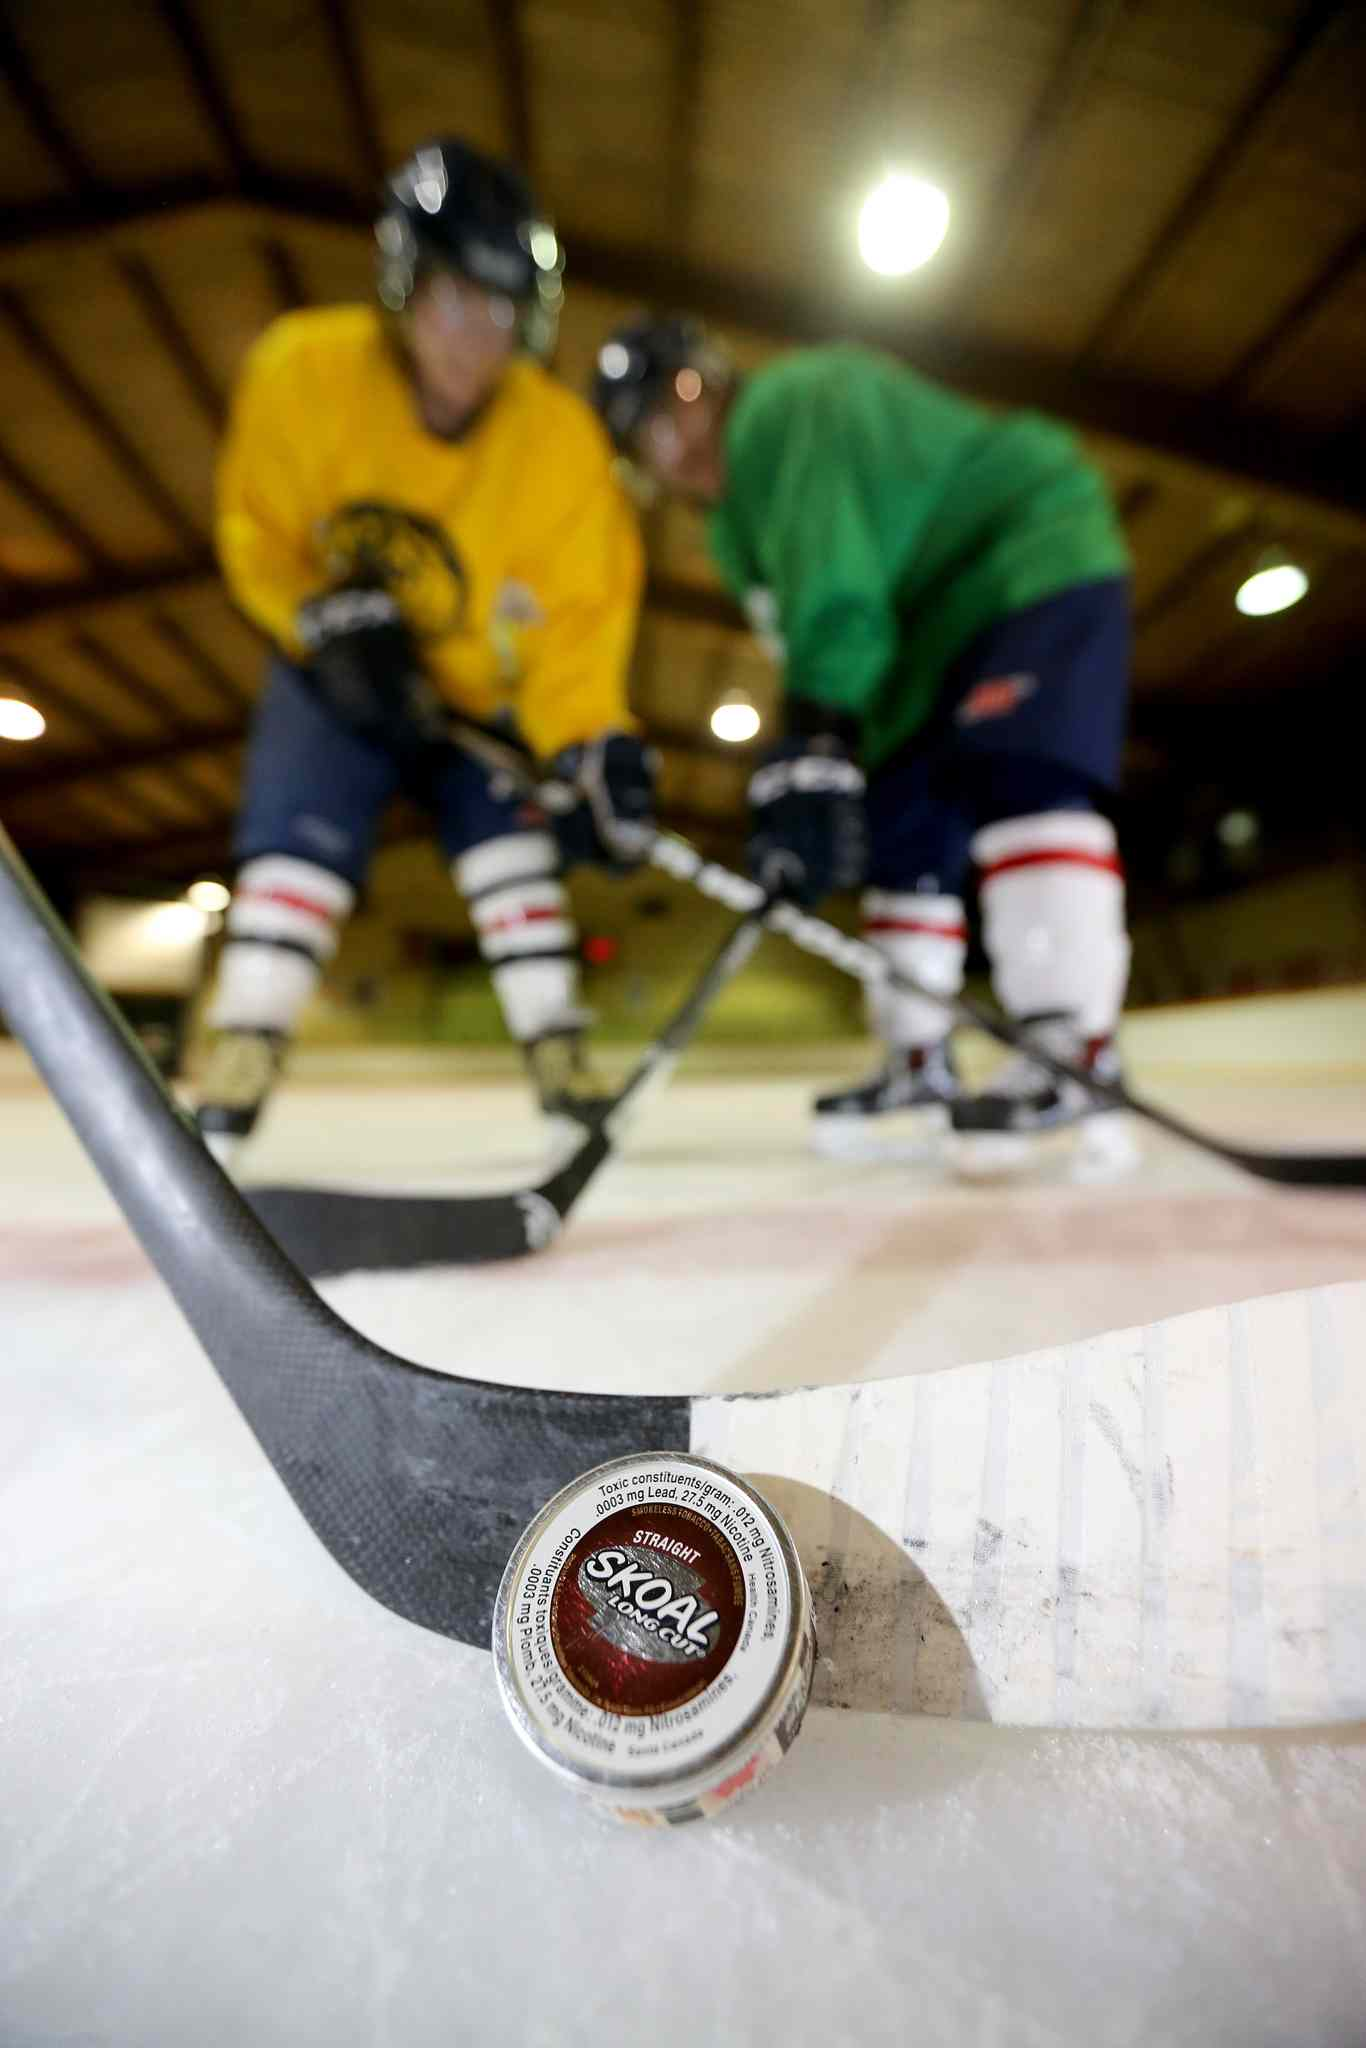 Hockey has a tobacco problem that has seeped into the culture of the sport -- from kids as young as 13 to grizzled NHL professionals.